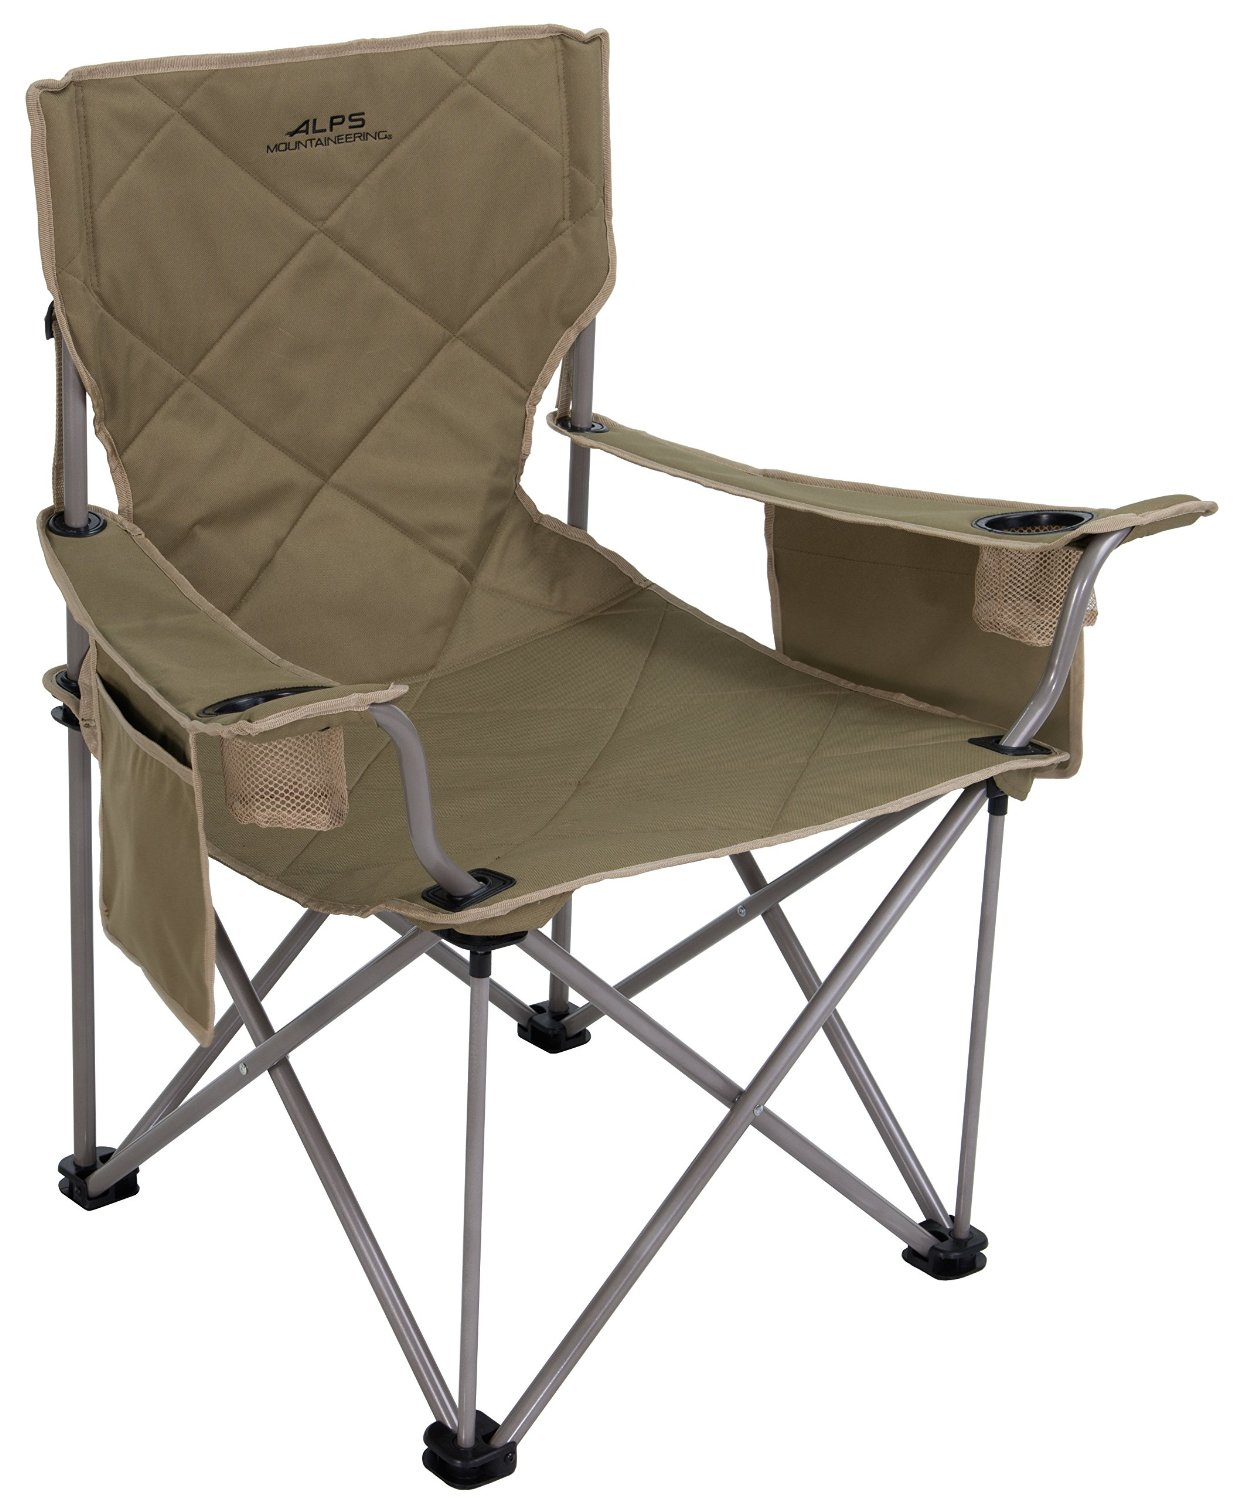 Fold Up Chair With Canopy 10 Stylish Heavy Duty Folding Camping Chairs Light Weight